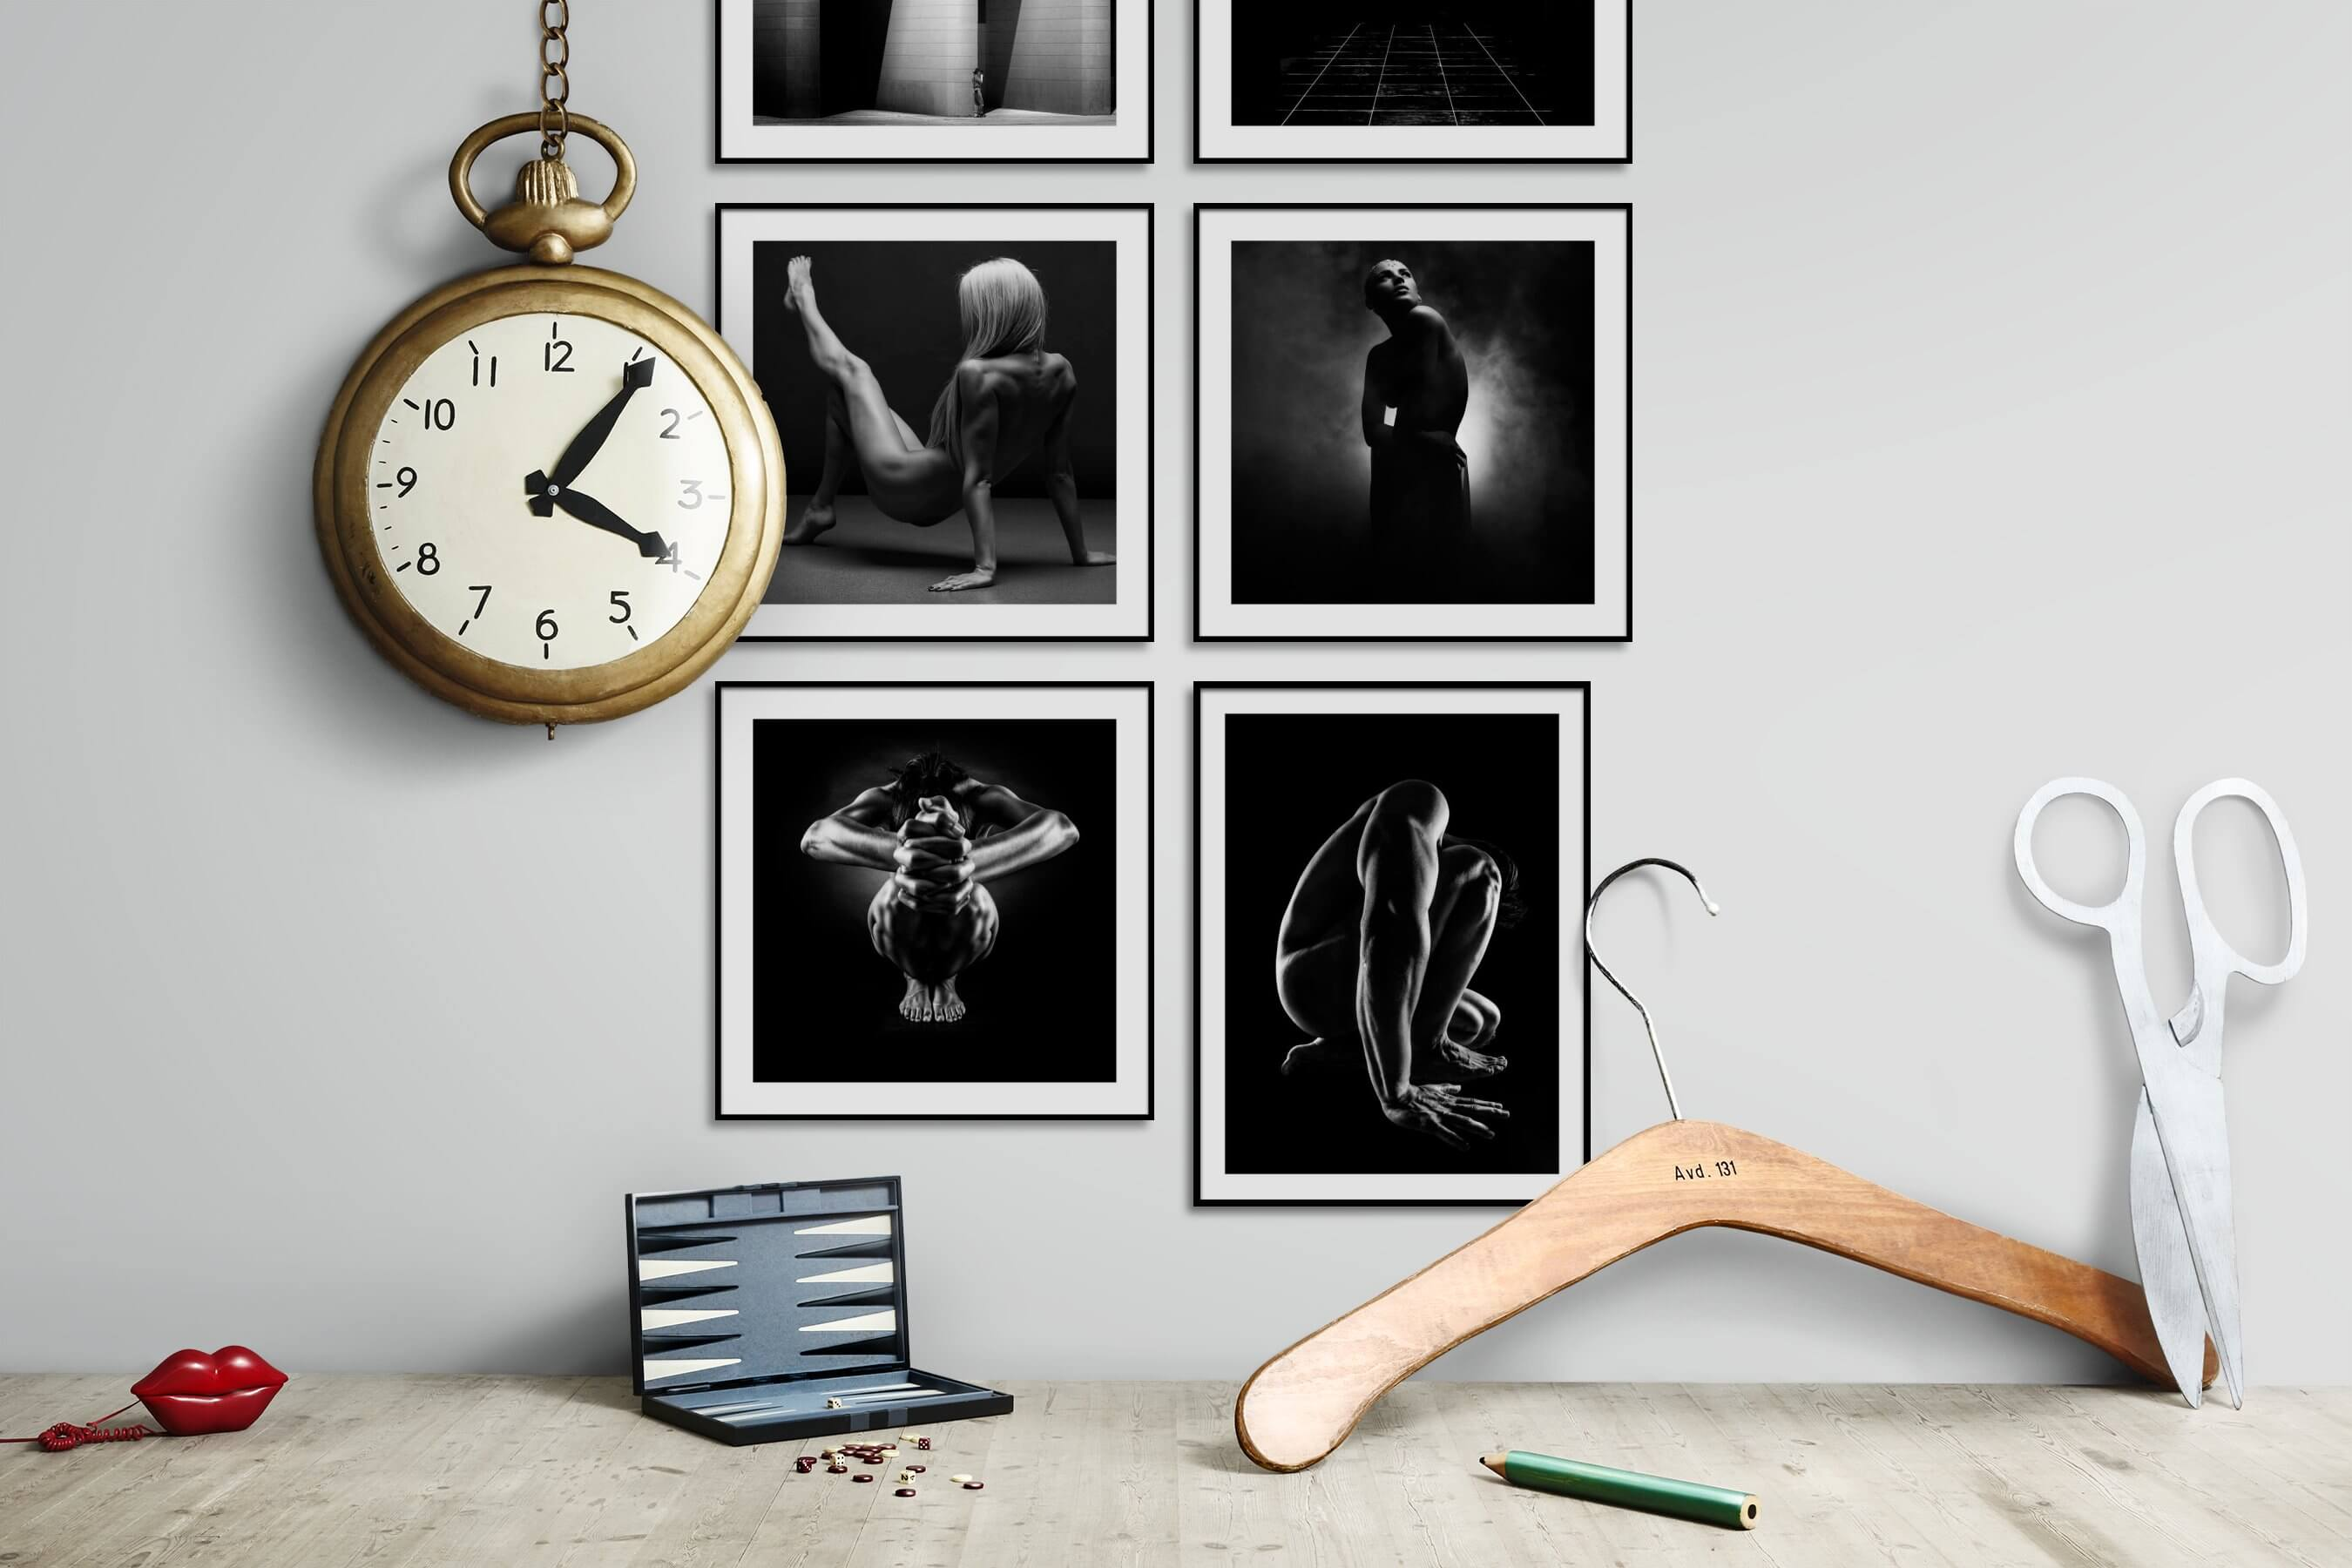 Gallery wall idea with six framed pictures arranged on a wall depicting Black & White, For the Moderate, Fashion & Beauty, and For the Minimalist